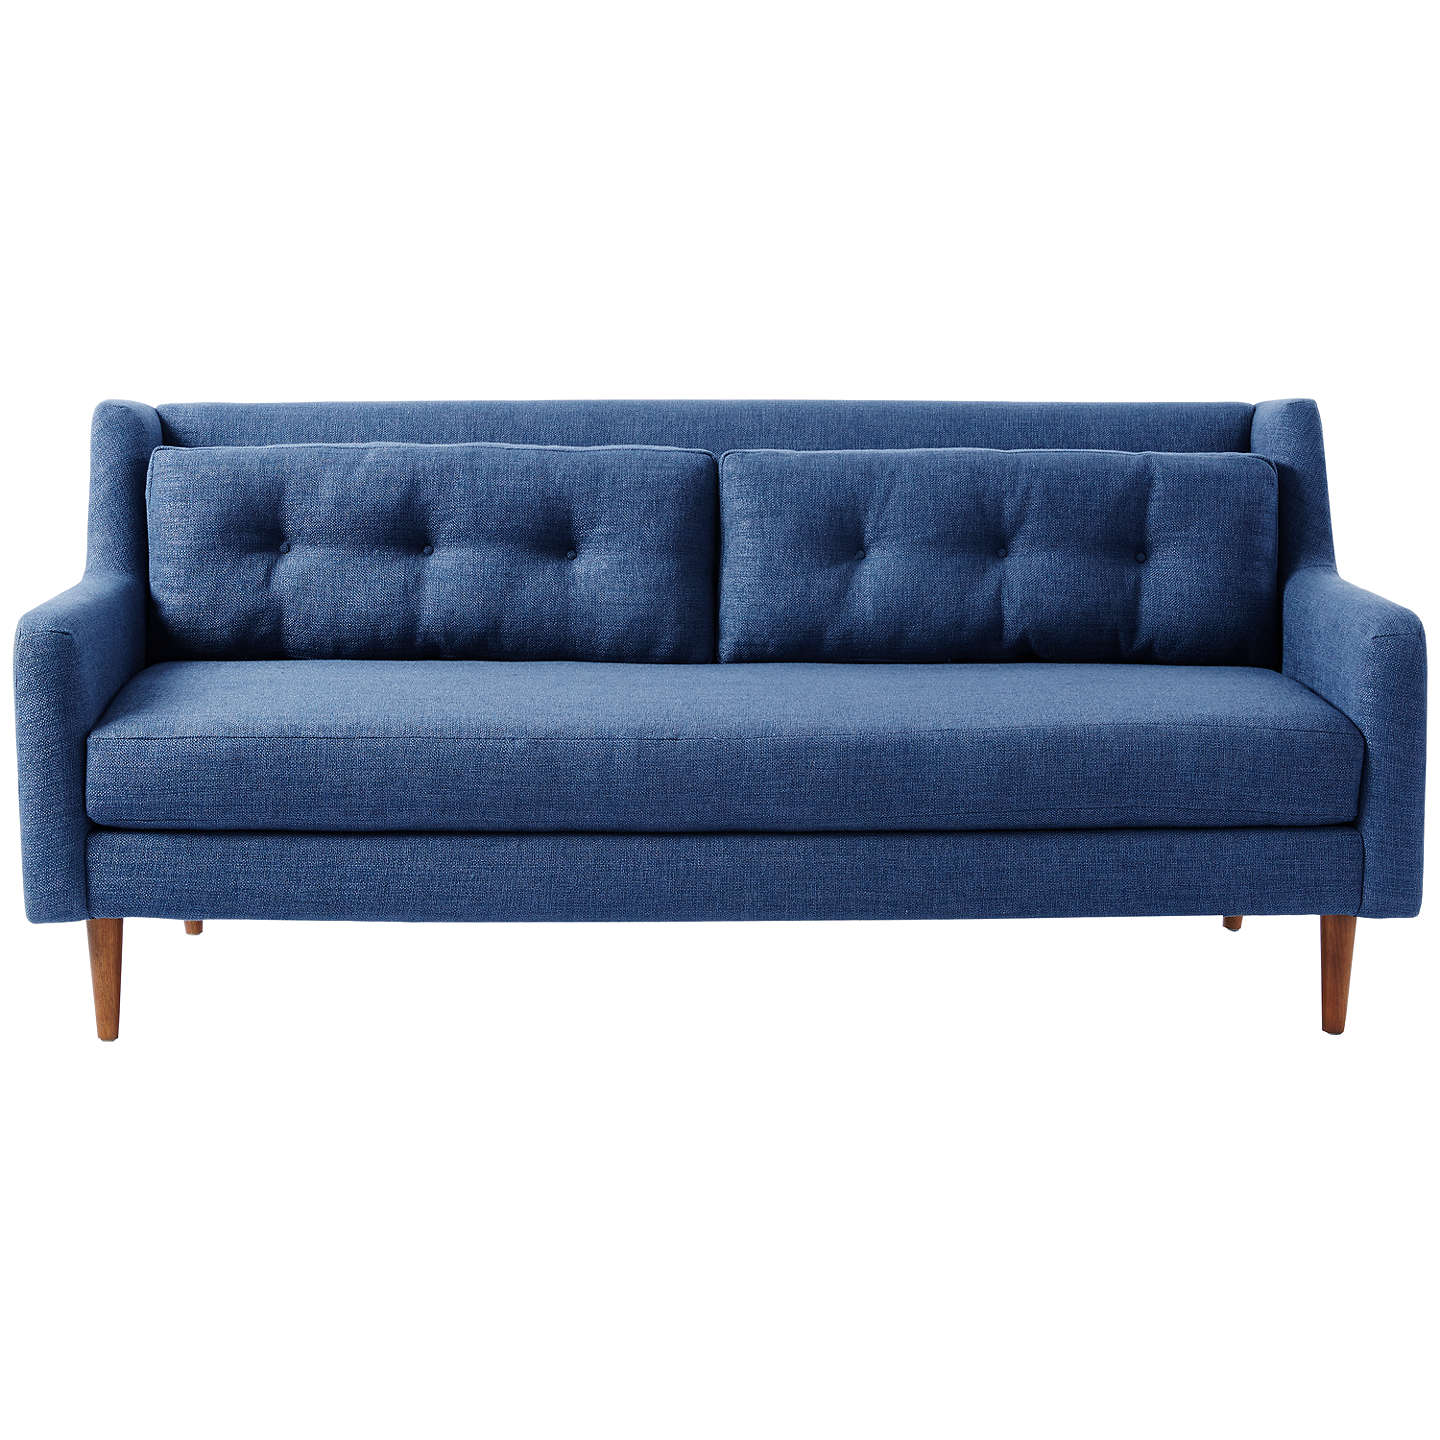 Buywest elm Crosby 3 Seater Sofa, Aegean Blue Online at johnlewis.com